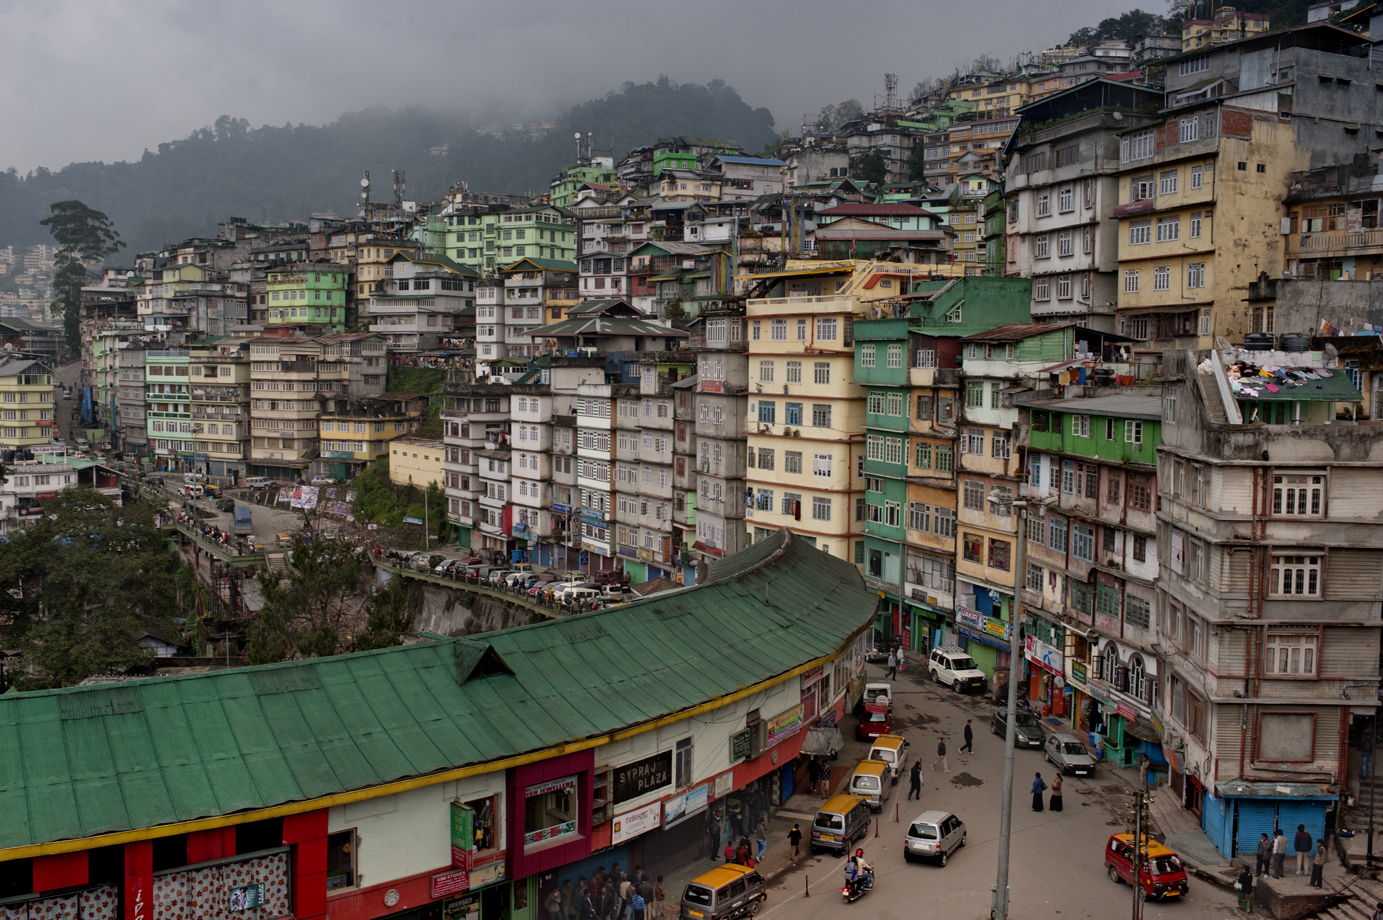 Gangtok, capital of Sikkim / India